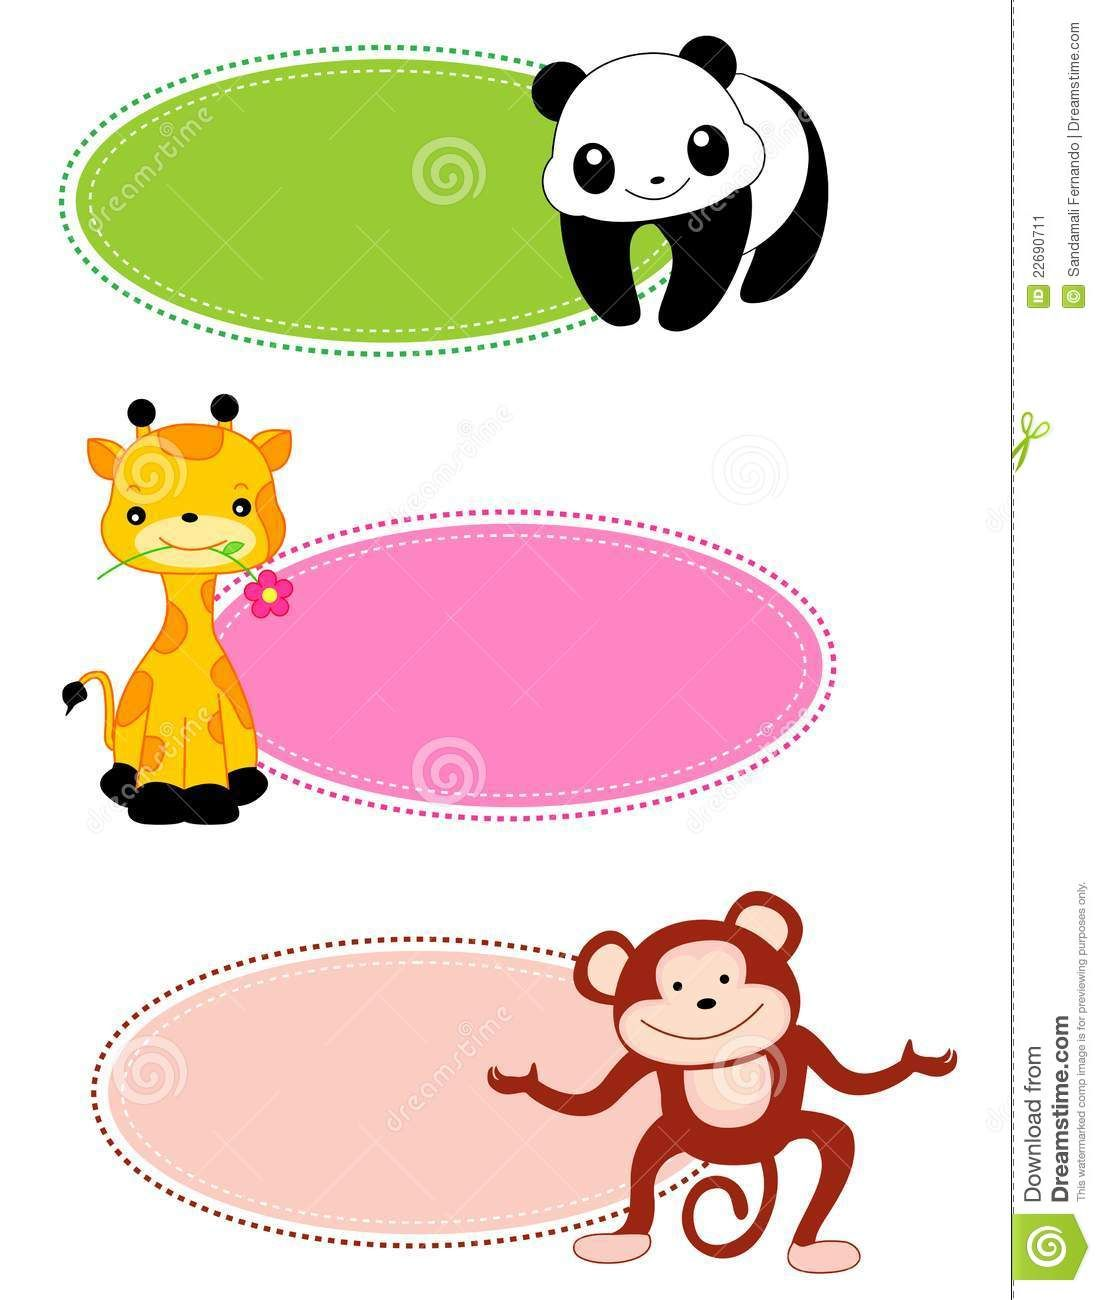 Free Cute School Clip Art Borders And Frames Animal Frame ...